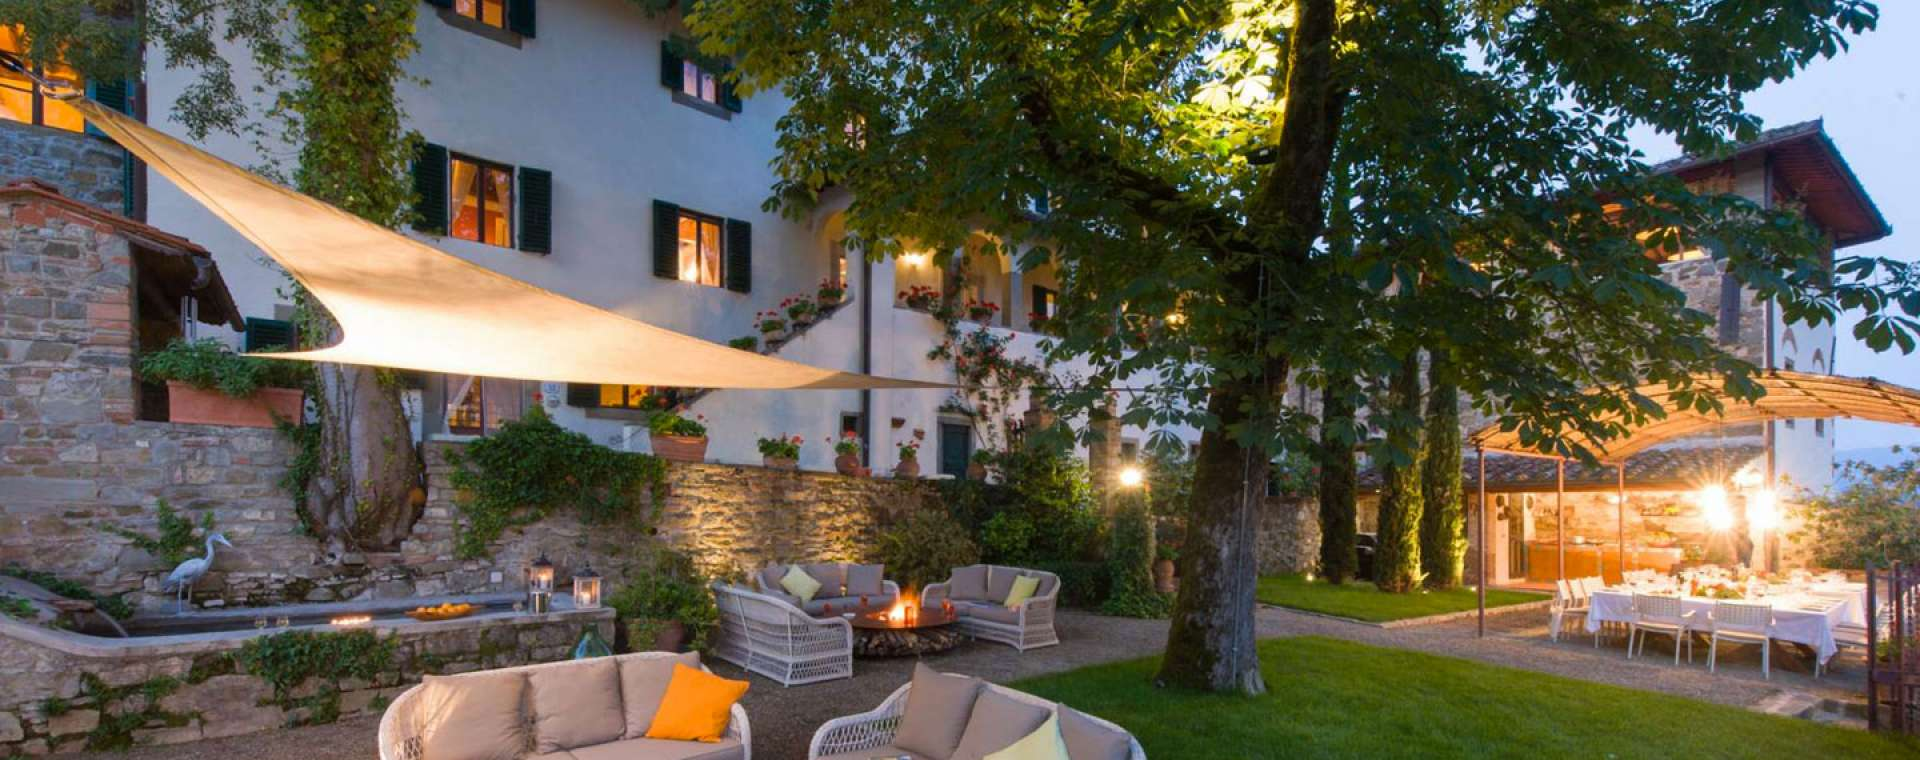 How to Choose the Right Villa in Tuscany